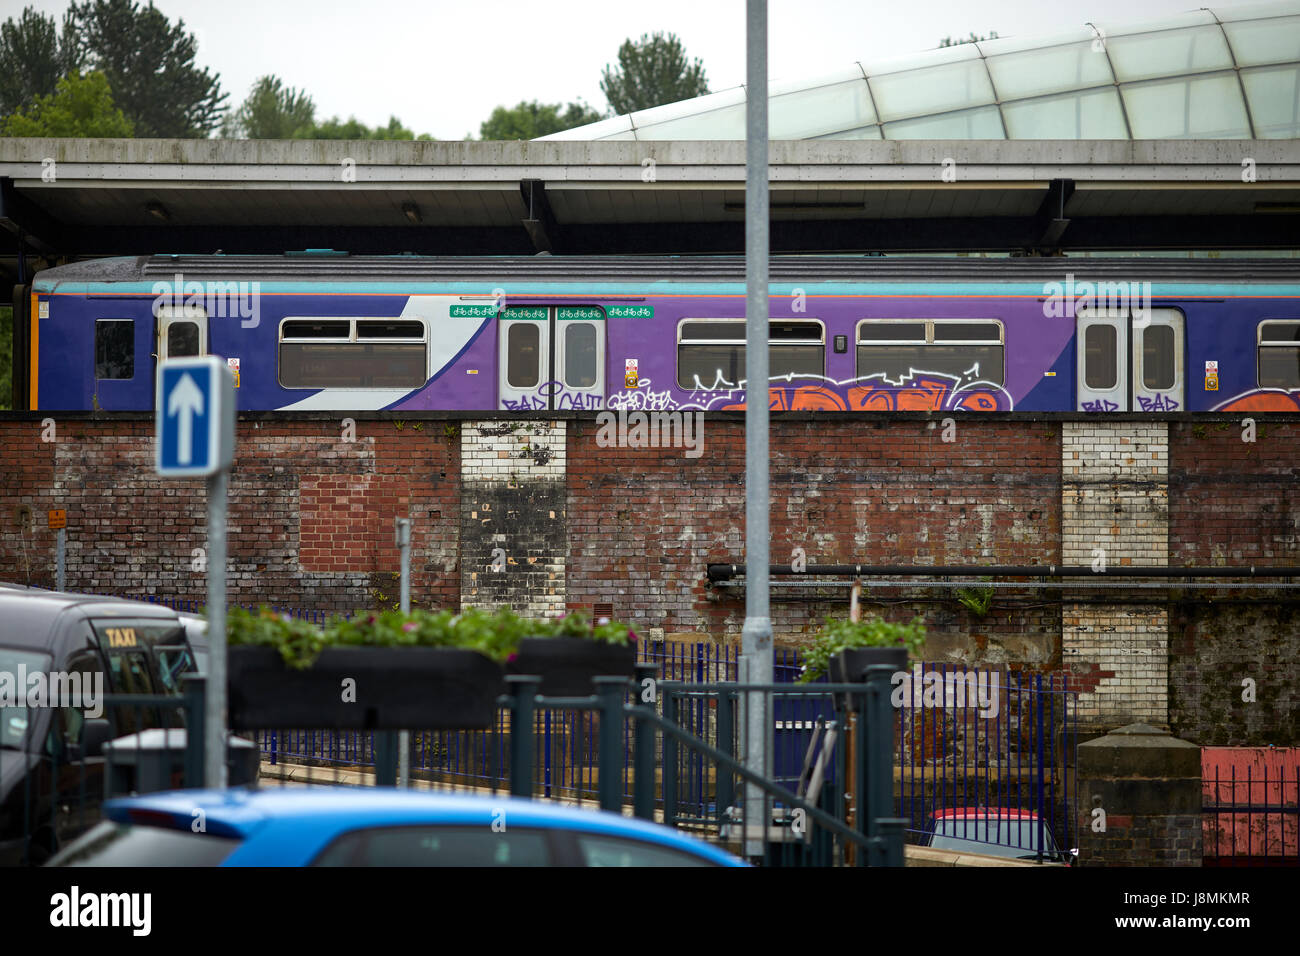 Blackburn railway station, a local Northern Sprinter train covered in Graffiti stopped in the platform. - Stock Image